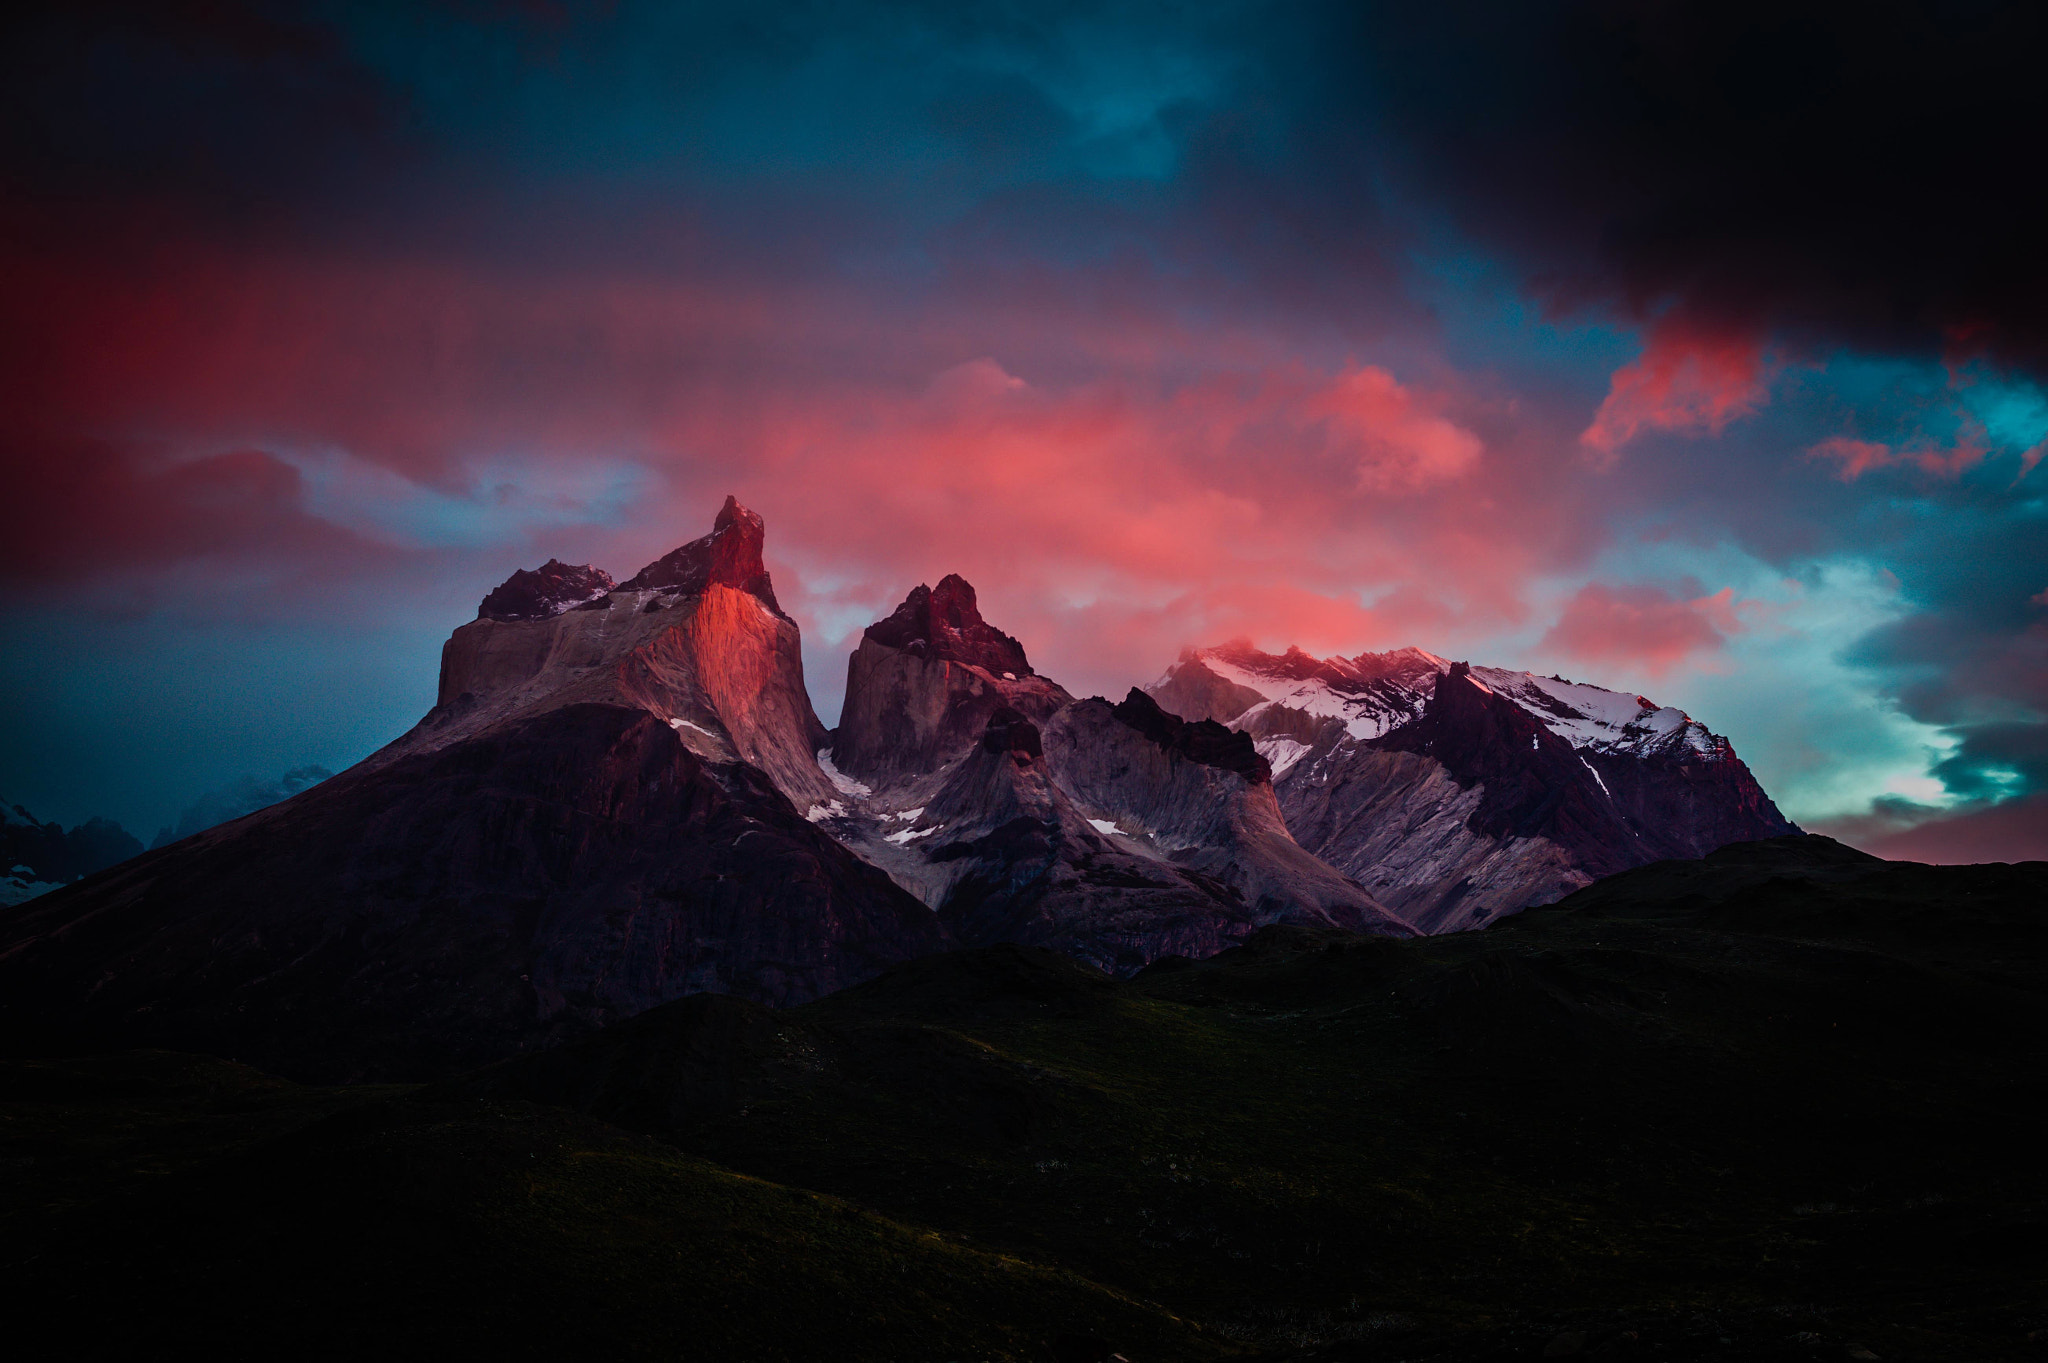 Photograph Predawn - Torres del Paine by Ockert Le Roux on 500px